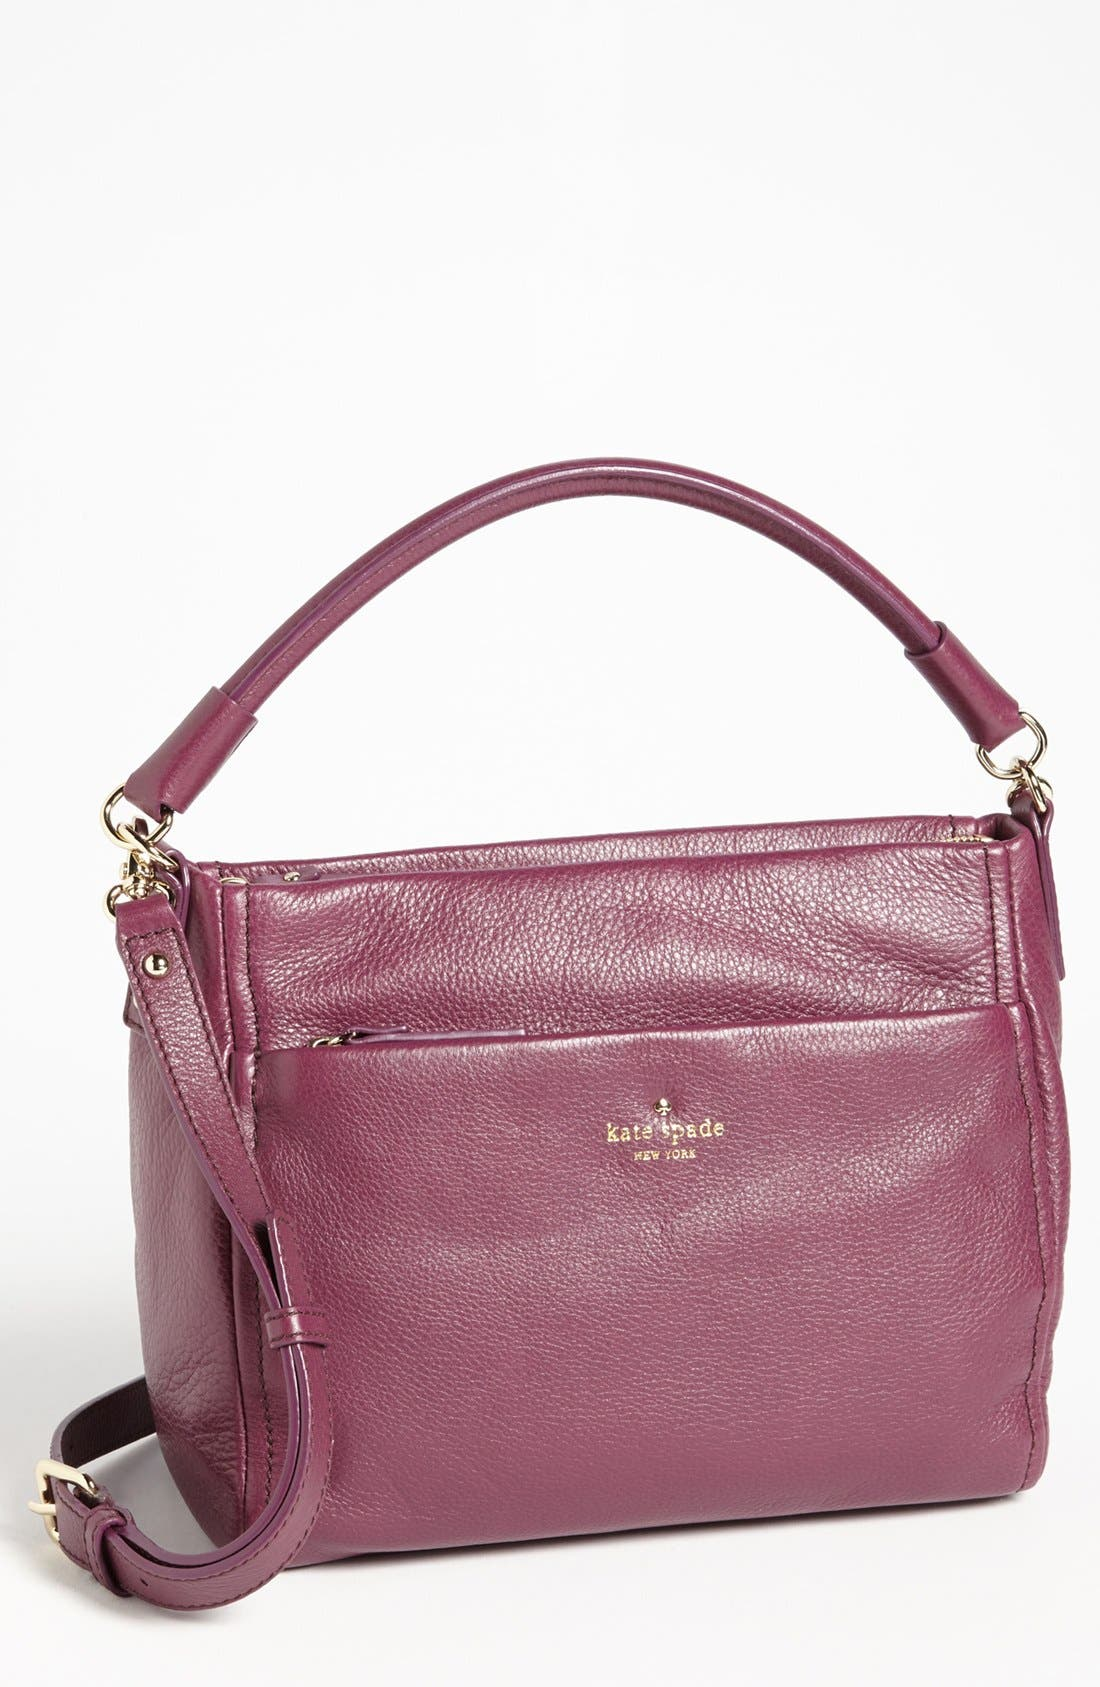 Main Image - kate spade new york 'cobble hill - little curtis' leather crossbody bag